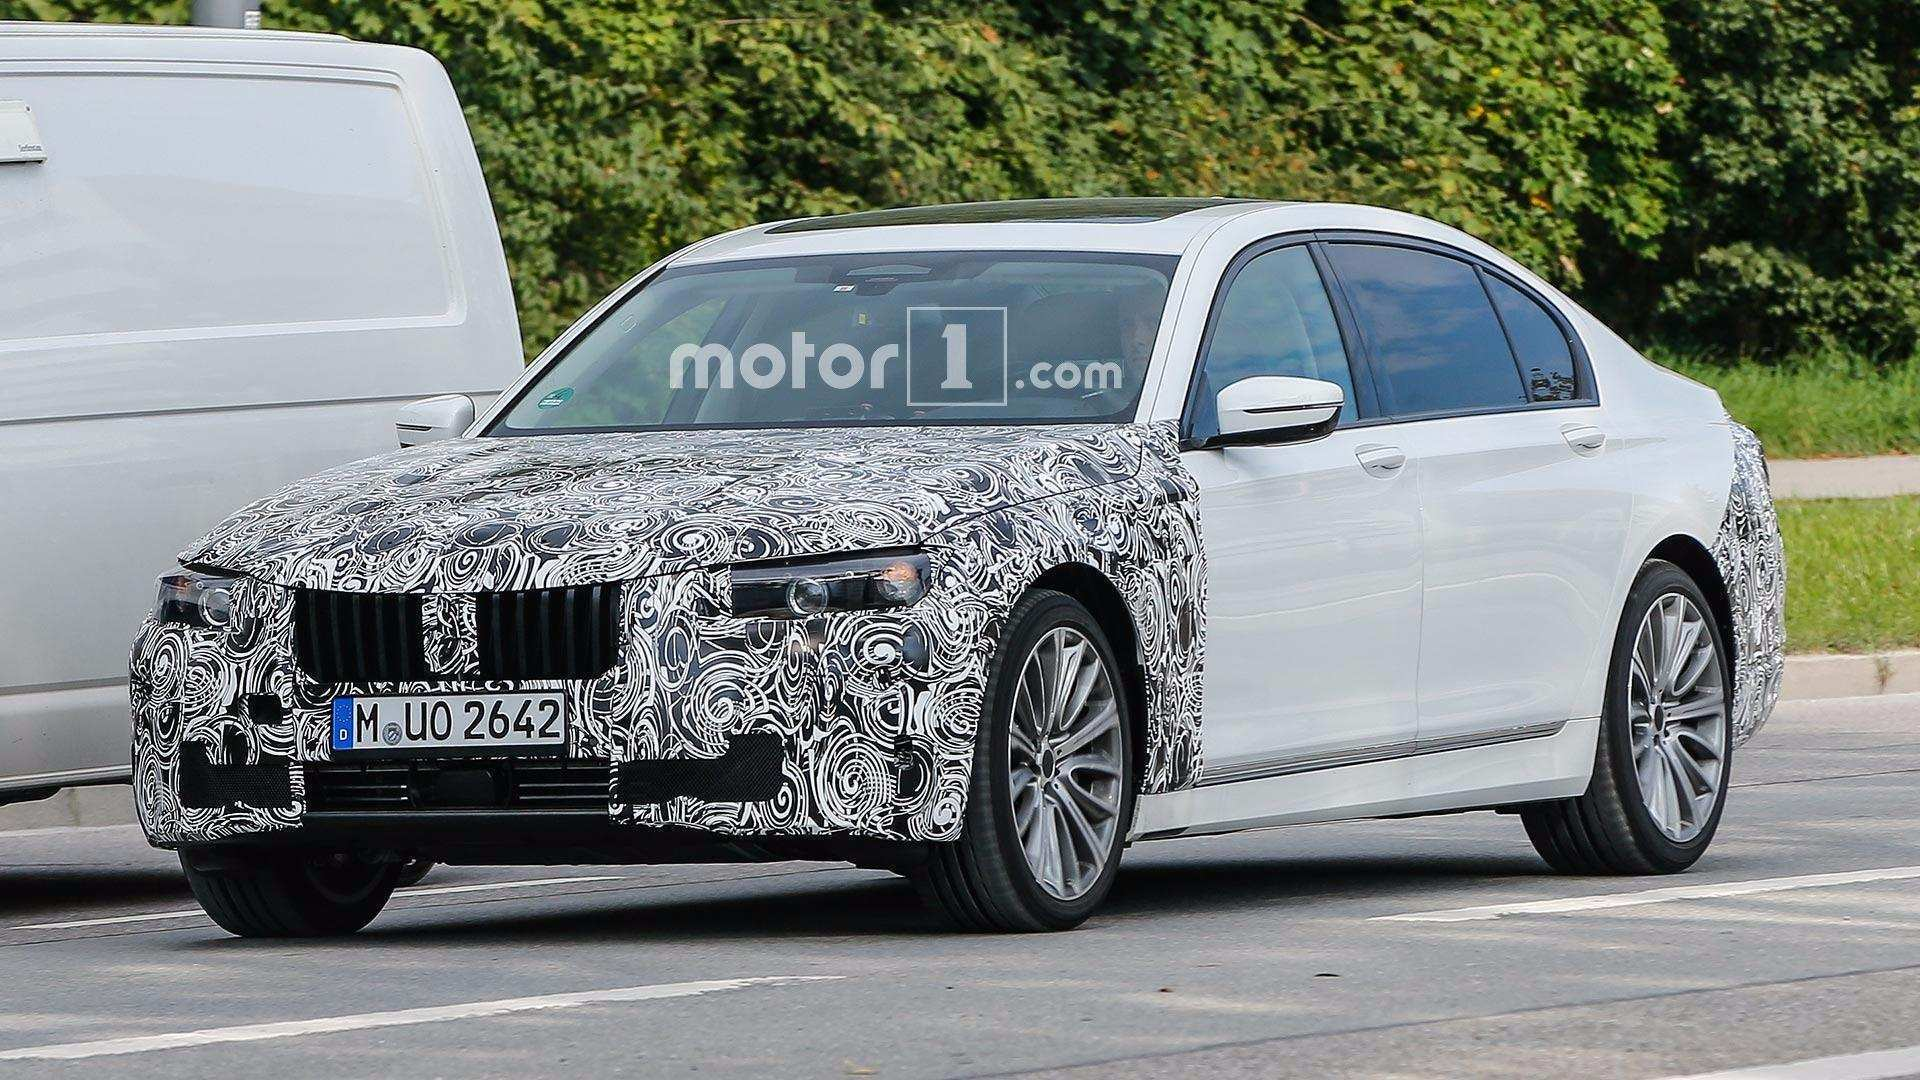 65 Best 2019 Bmw 7 Series Lci Images